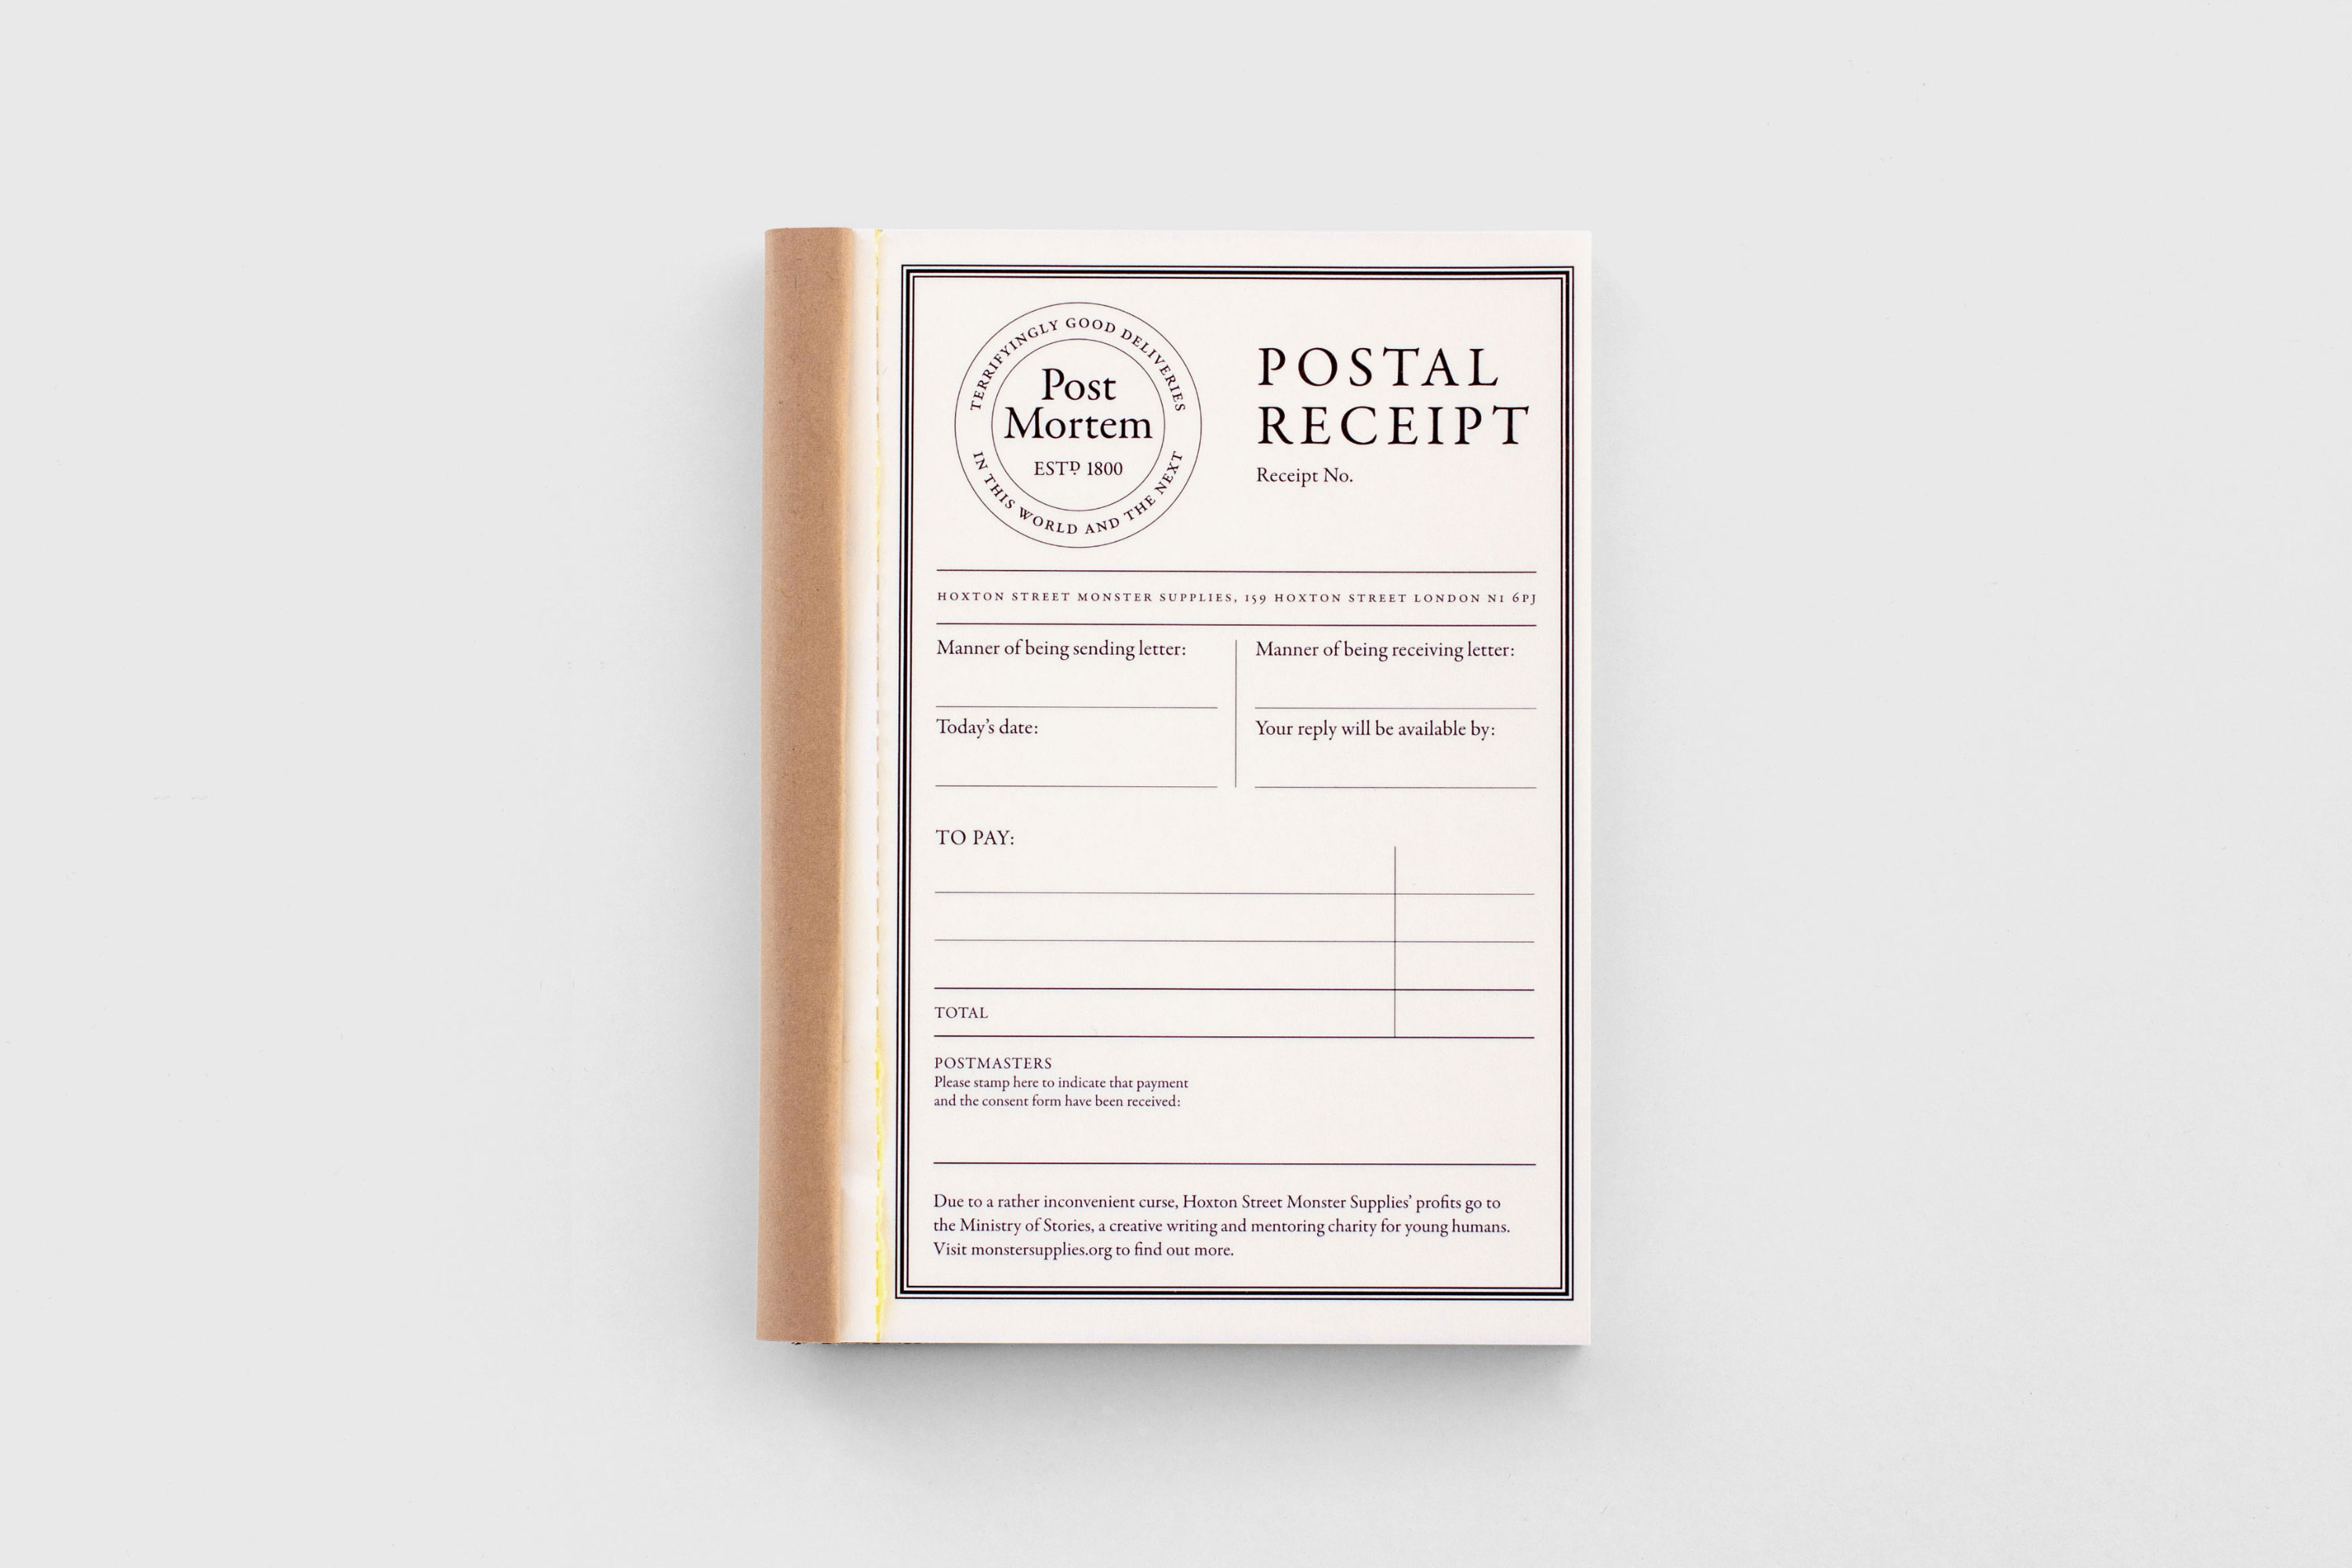 hsms postal services we